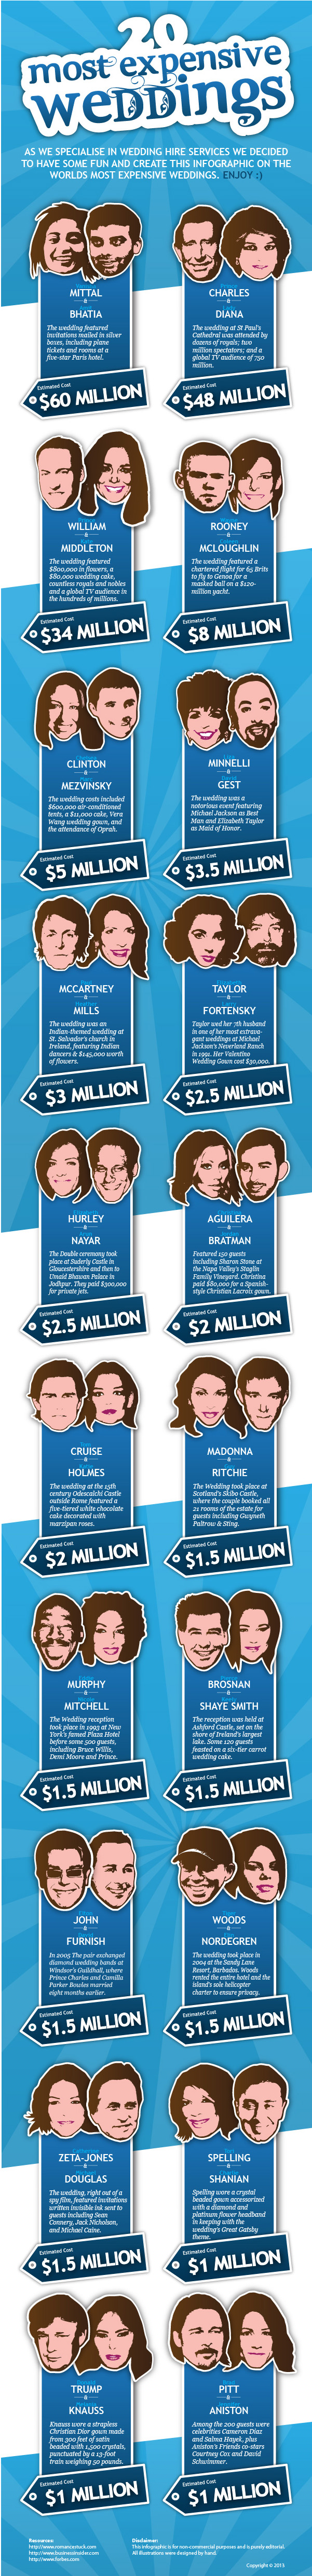 20 Most Expensive Celebrity Weddings Infographic